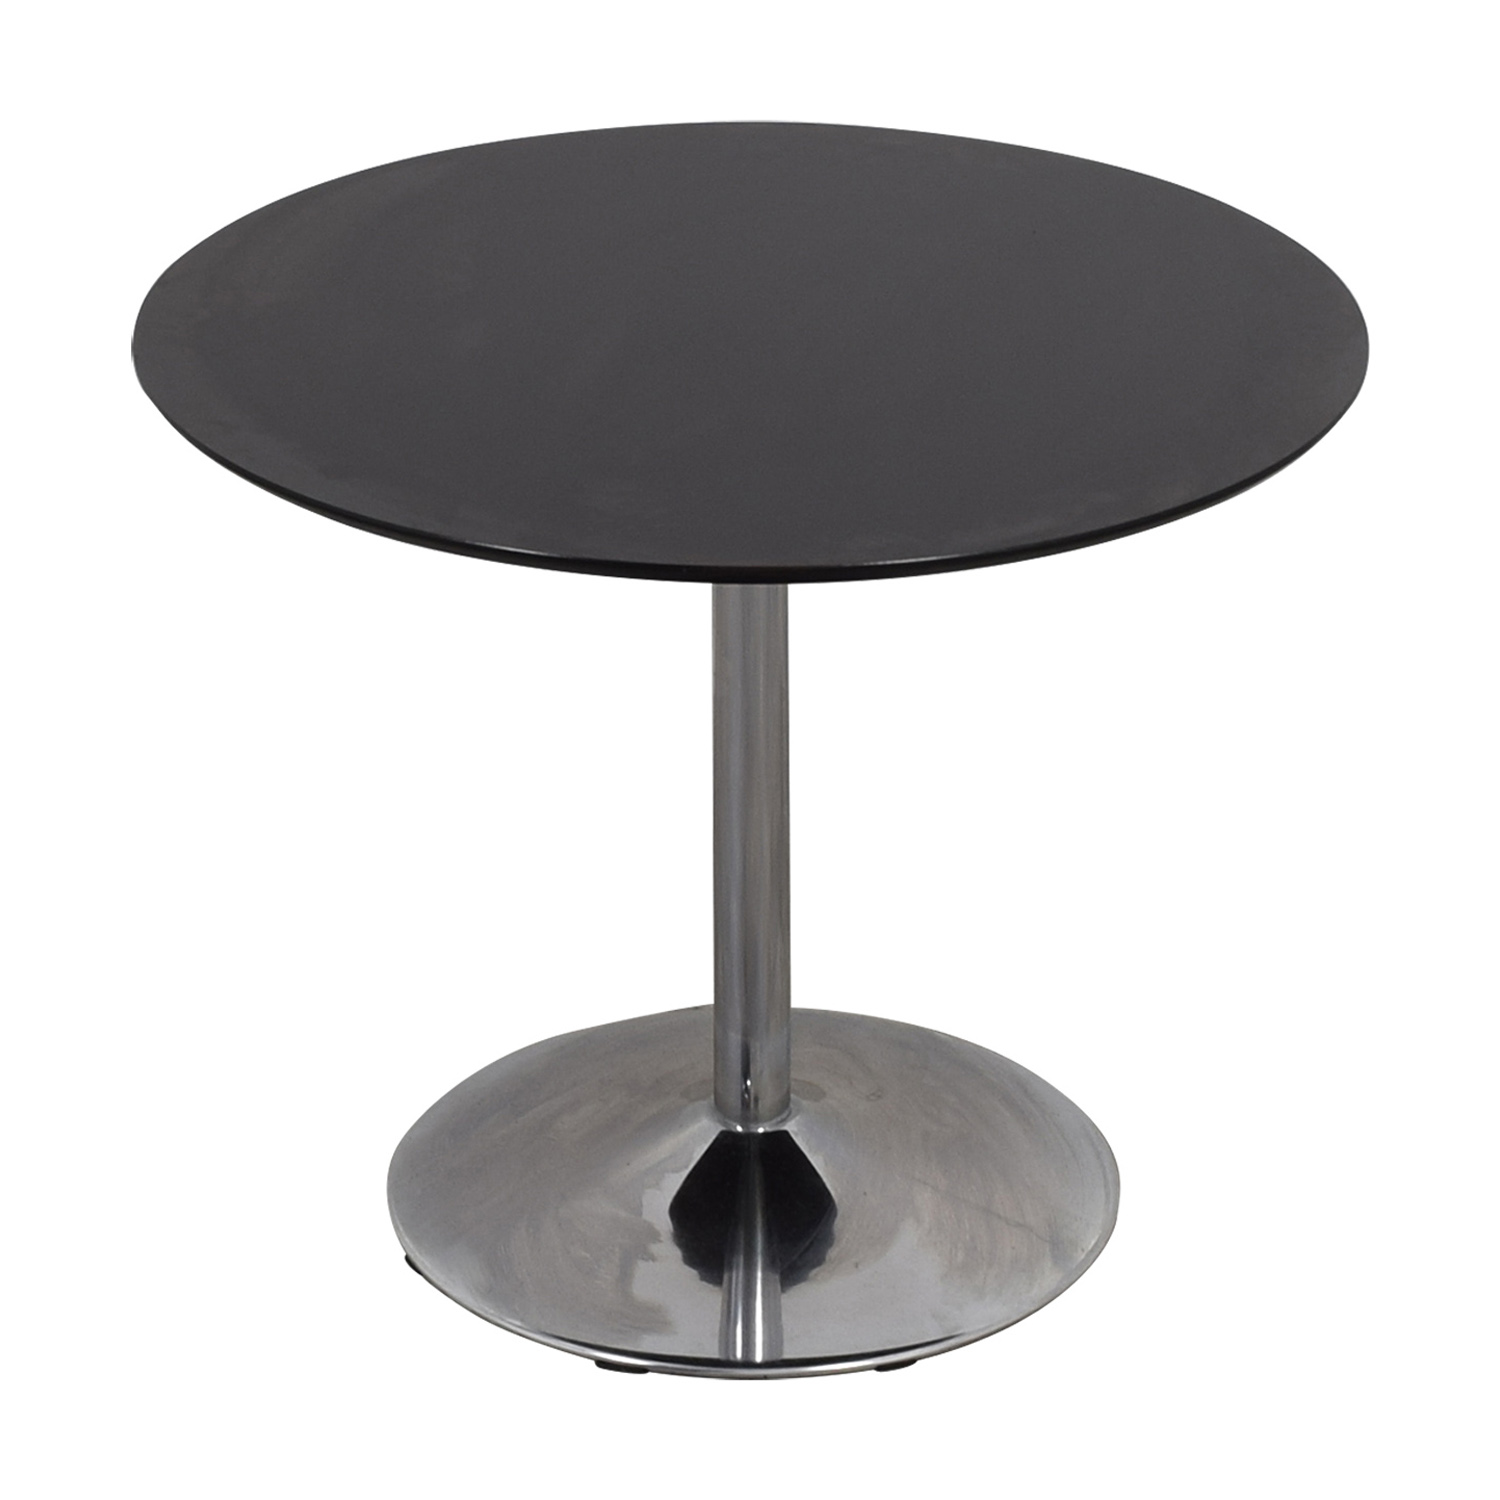 Zipcode Design Zipcode Design Ember Black Top and Metal Base Dining Table second hand